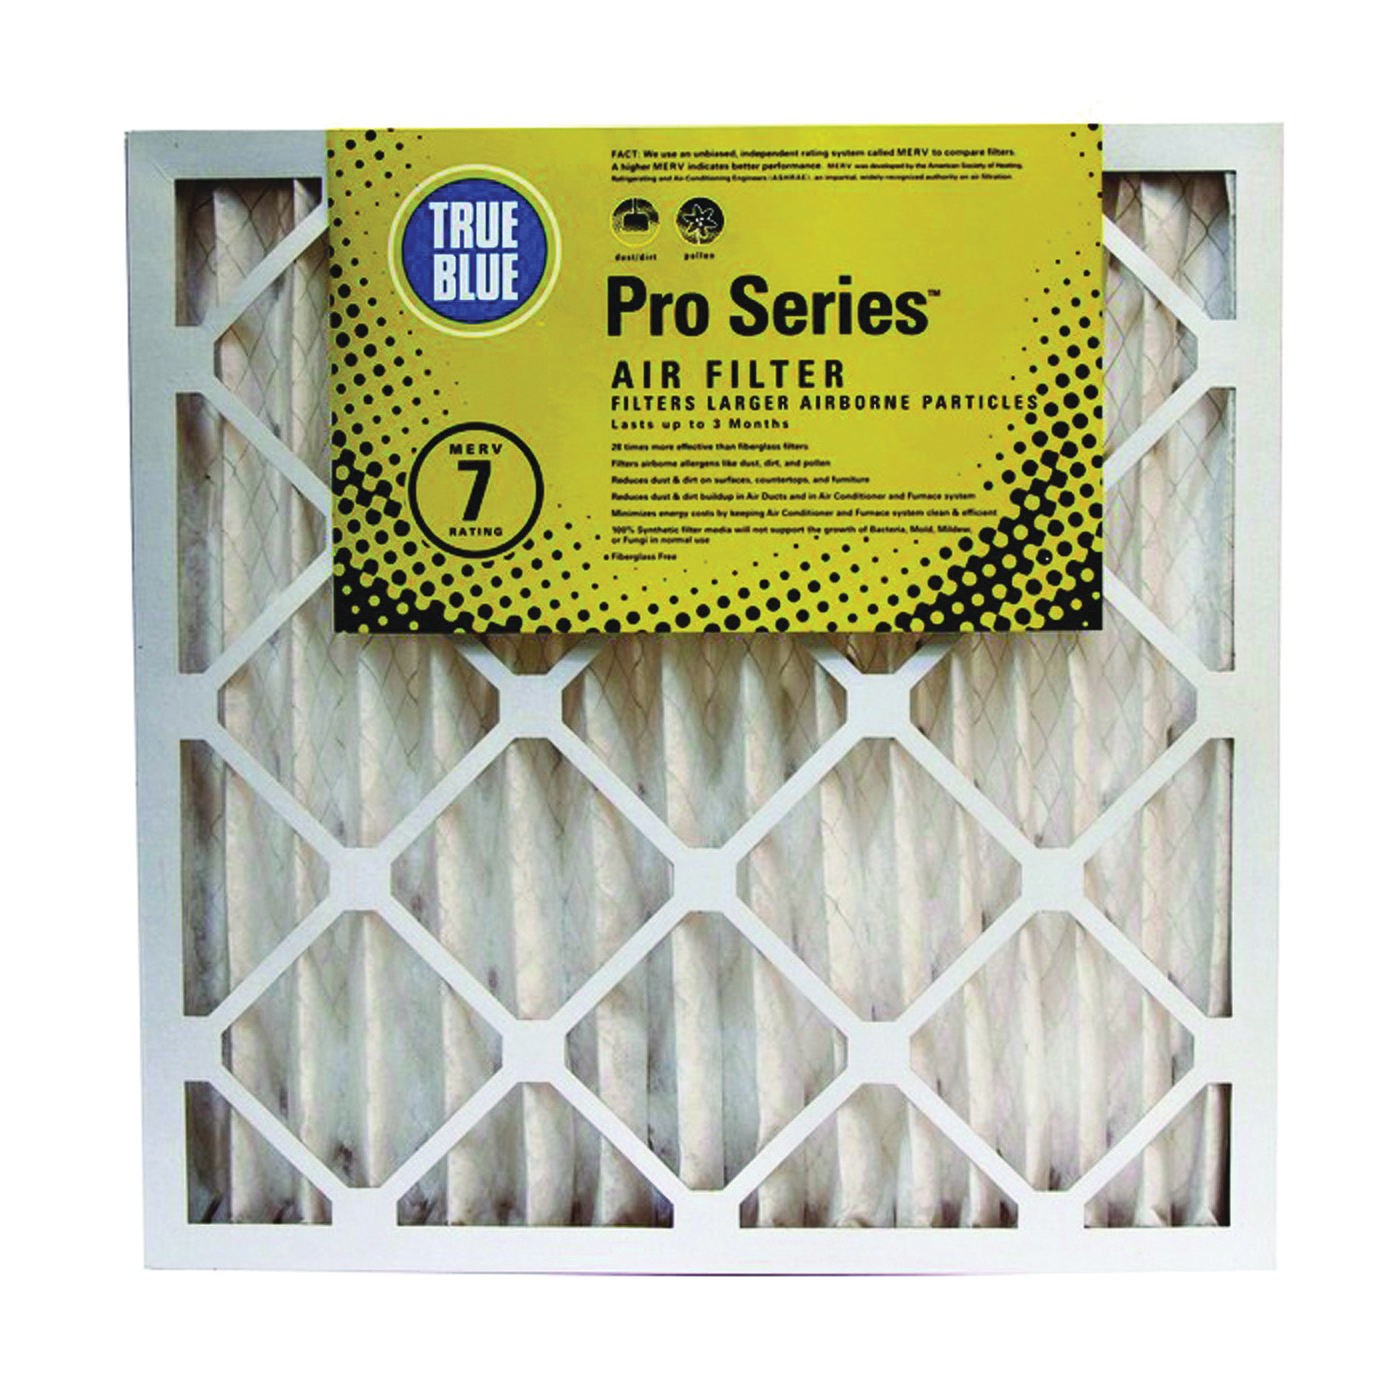 Picture of True Blue PRO220202 Pleated Air Filter, 20 in L, 20 in W, 7 MERV, Cardboard Frame